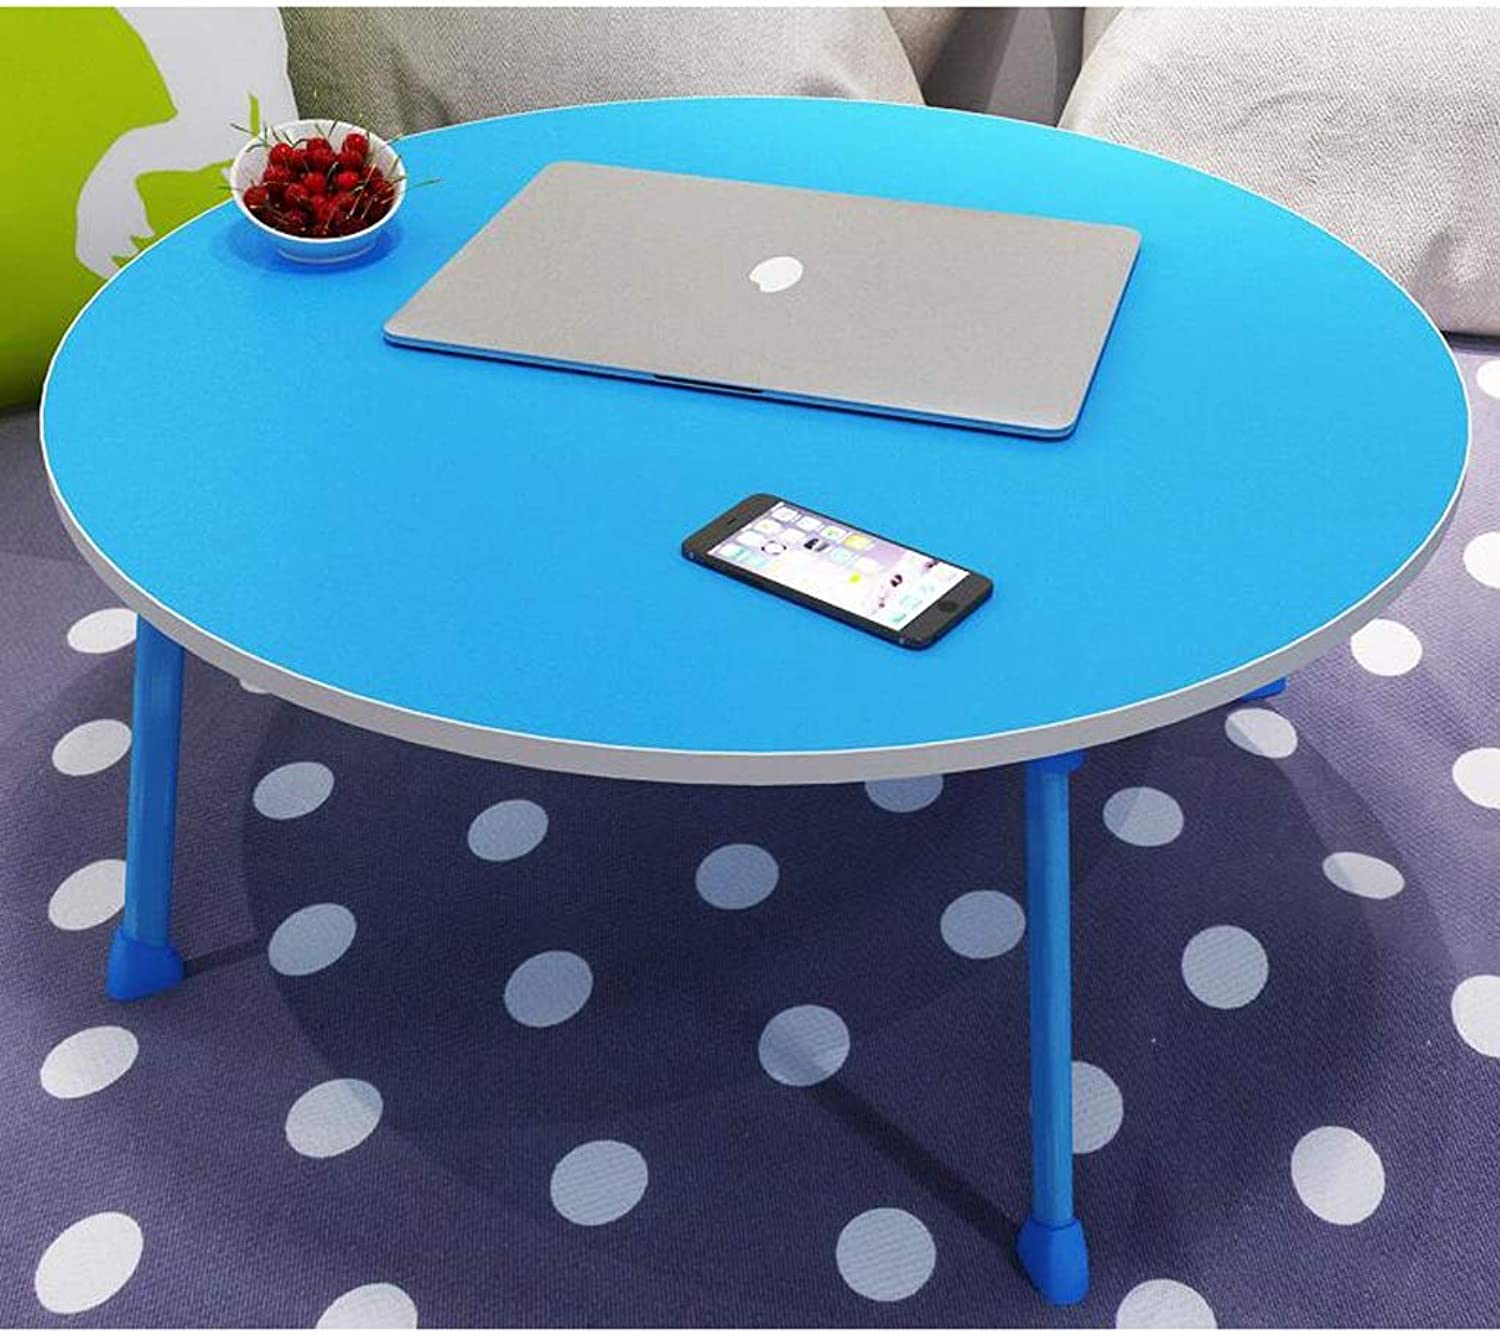 JSFQ Small Folding Table for Bed - College Desk - 60 X 60 X 28cm, Metal Folding Table, Round Table Folding Table (color   F)